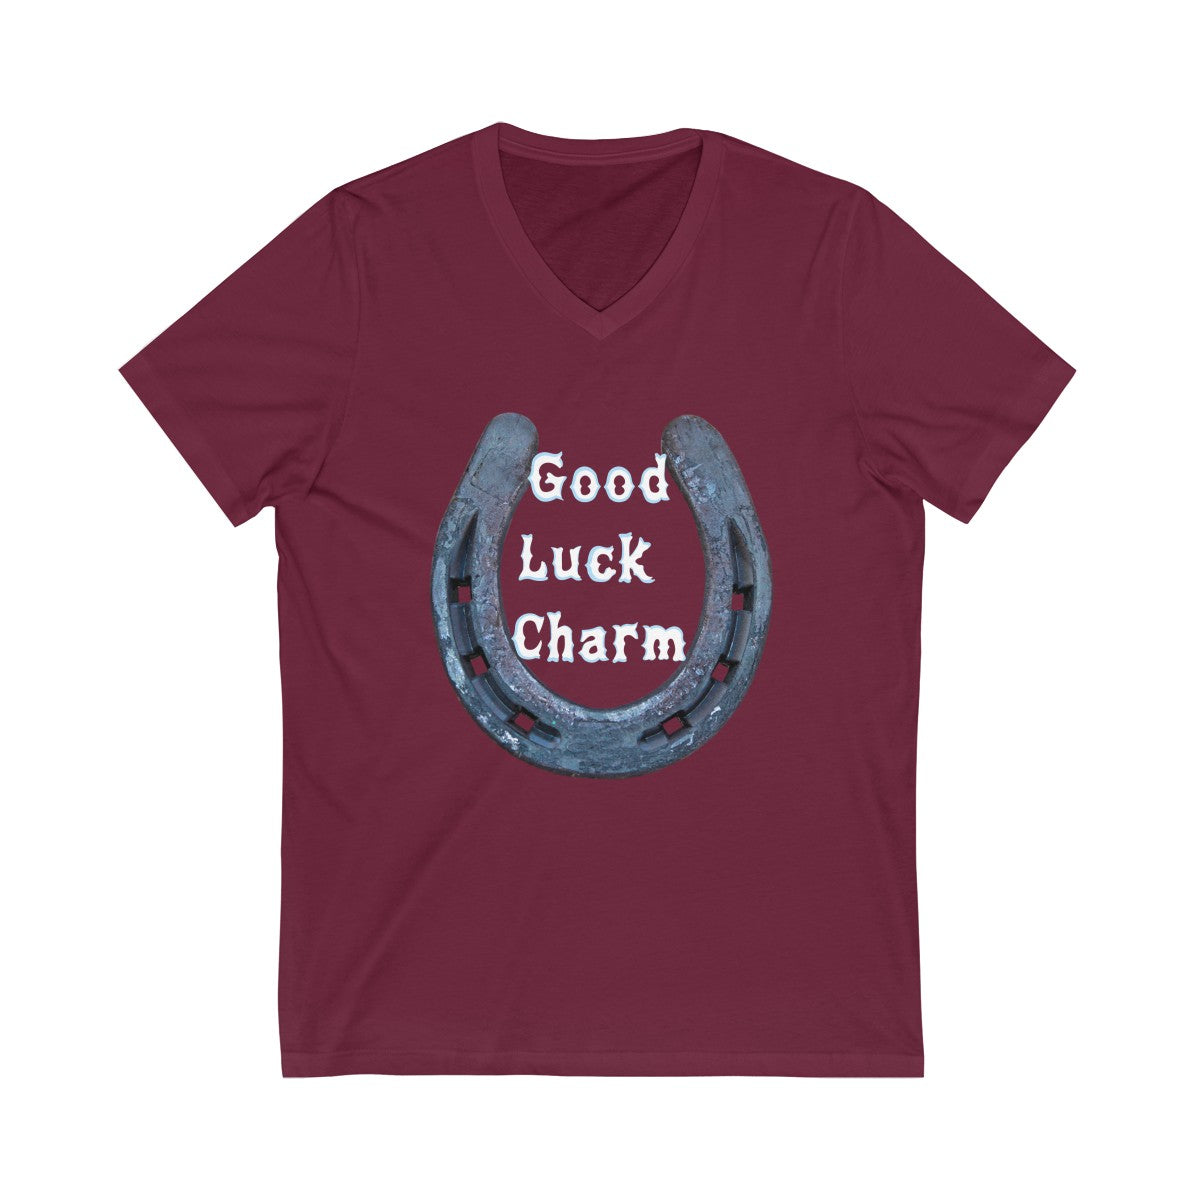 (Good Luck Charm) Unisex Jersey Short Sleeve V-Neck Tee - LOL, I NEED That!